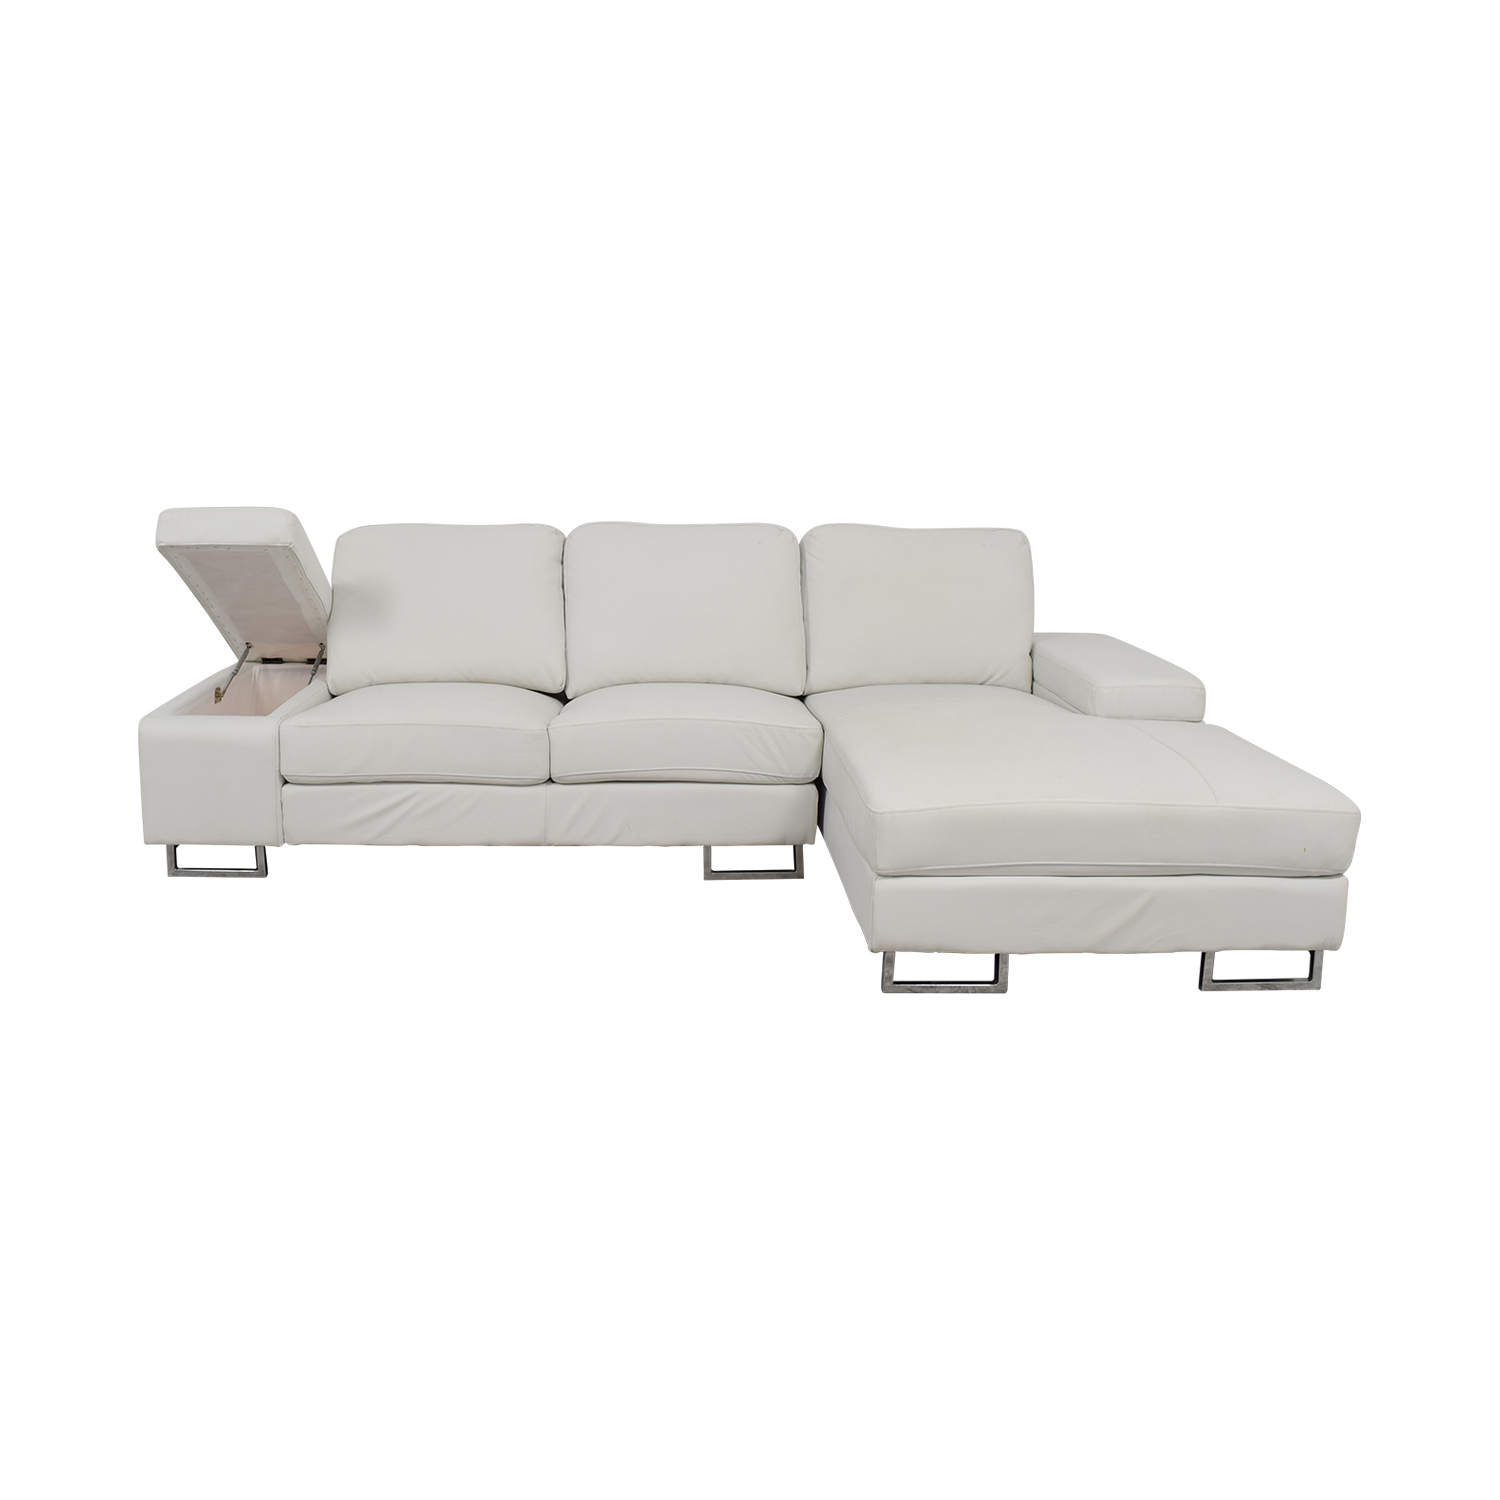 buy Lumens White Leather Chaise Sectional With Arm Storage Lumens